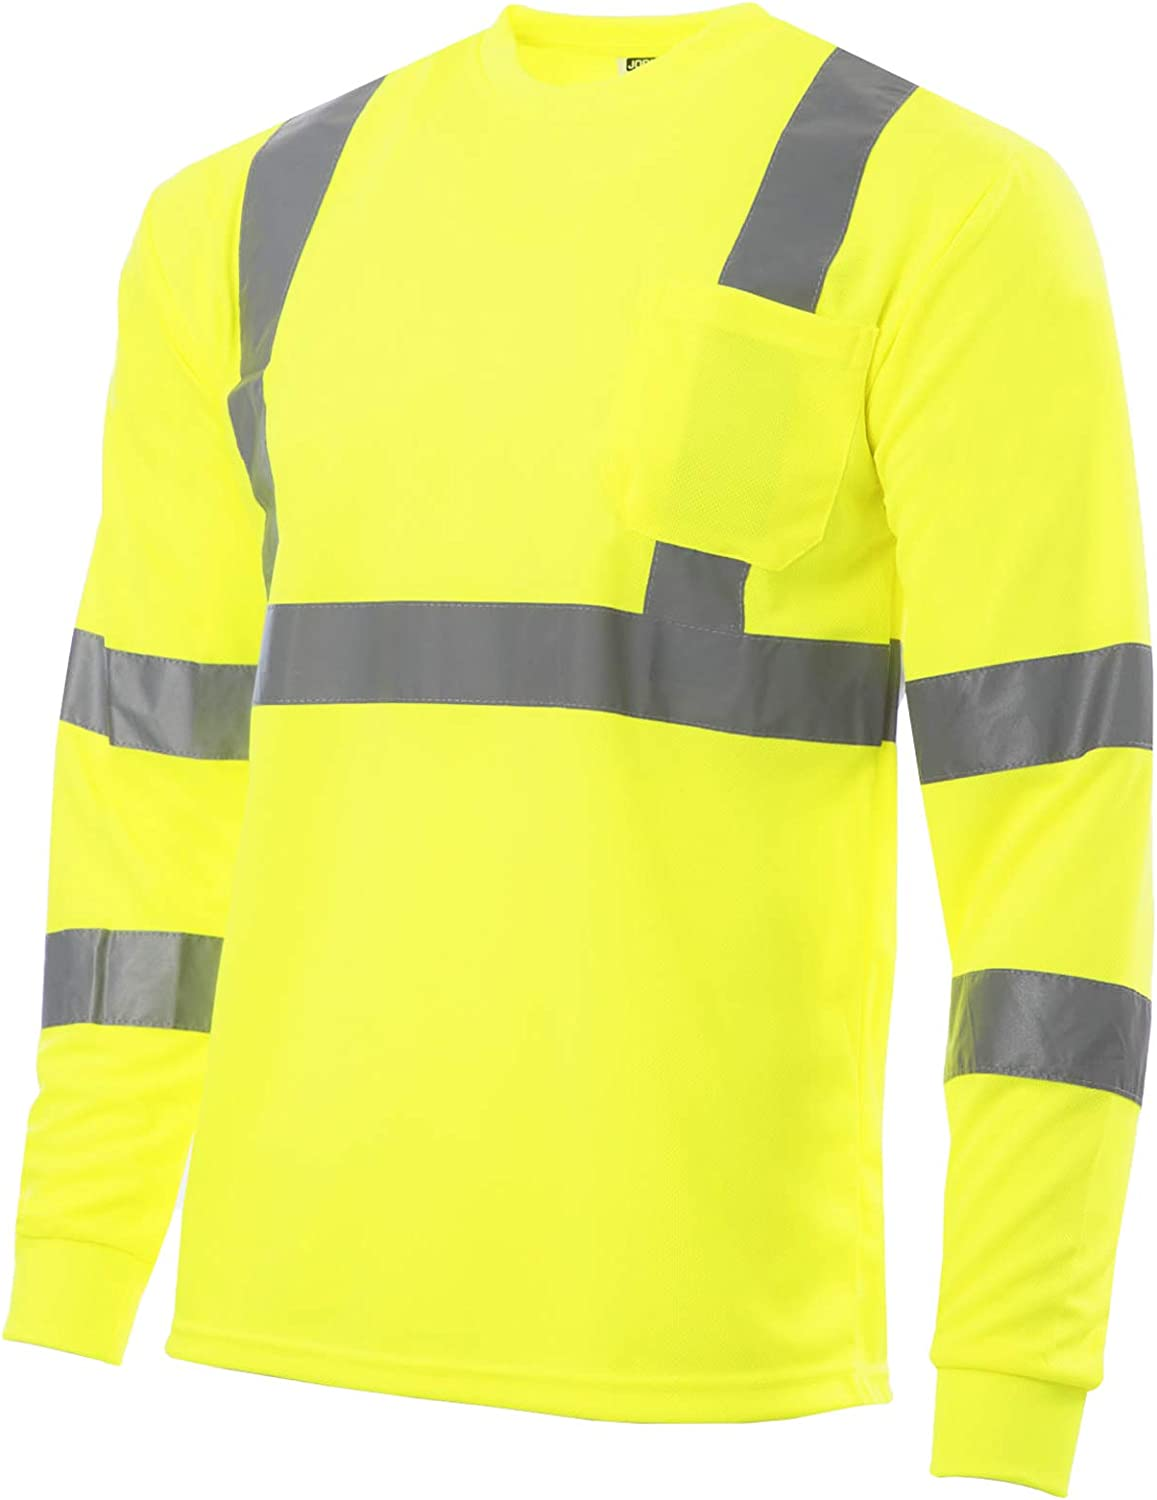 JORESTECH Safety T Shirt Reflective High Visibility Long Sleeve Yellow/Lime ANSI Class 3 Level 2 Type R TS-02 (XL)